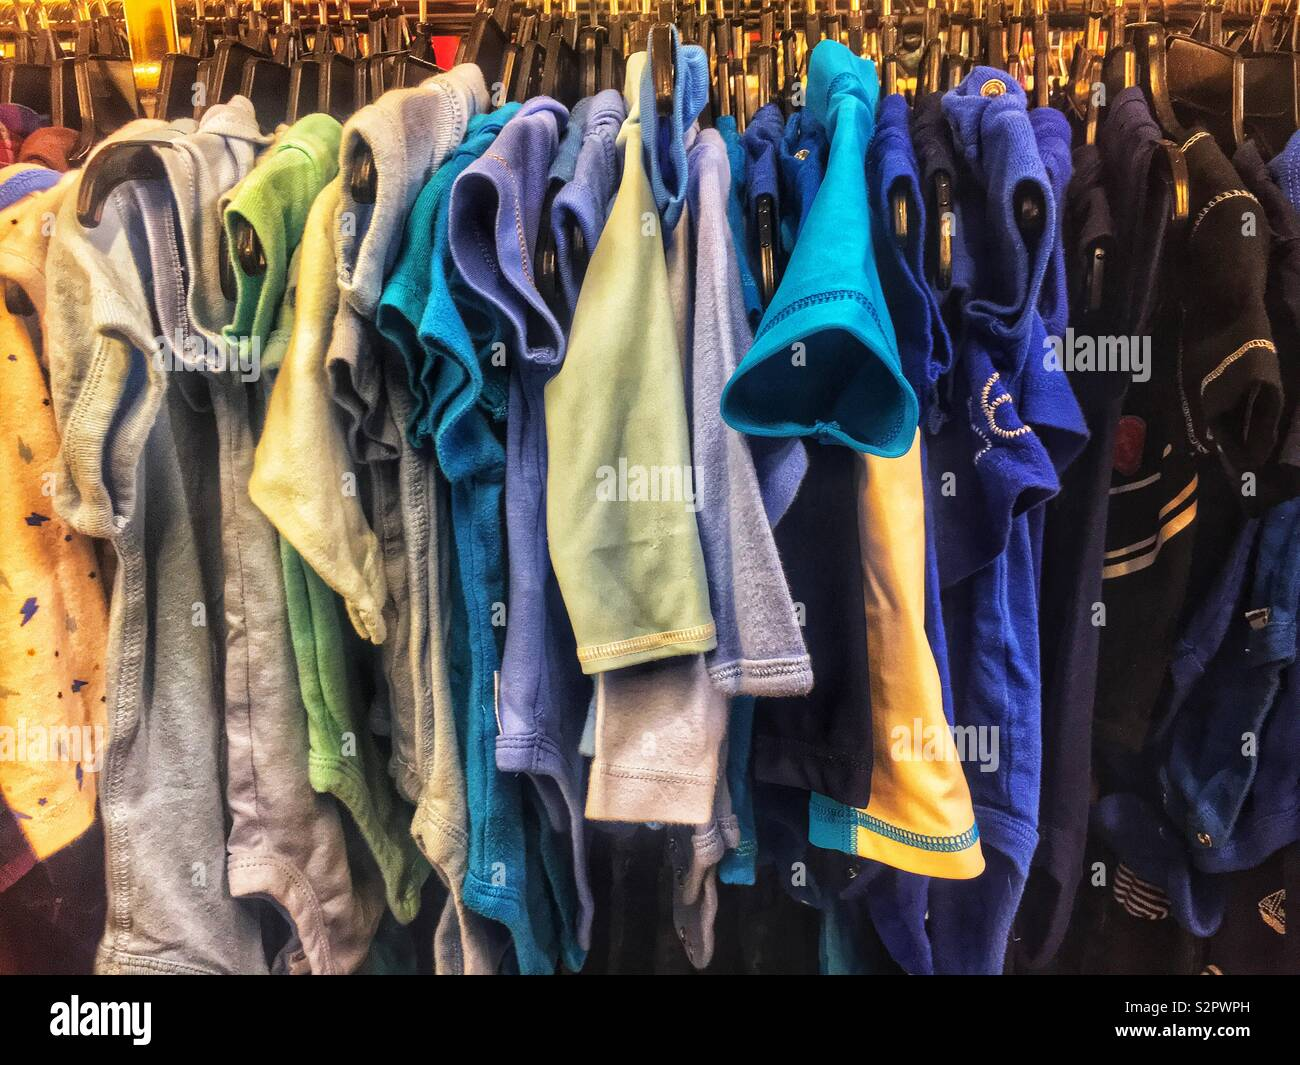 Many short sleeved cotton shirts of various bright colors and hanging on a rod. - Stock Image